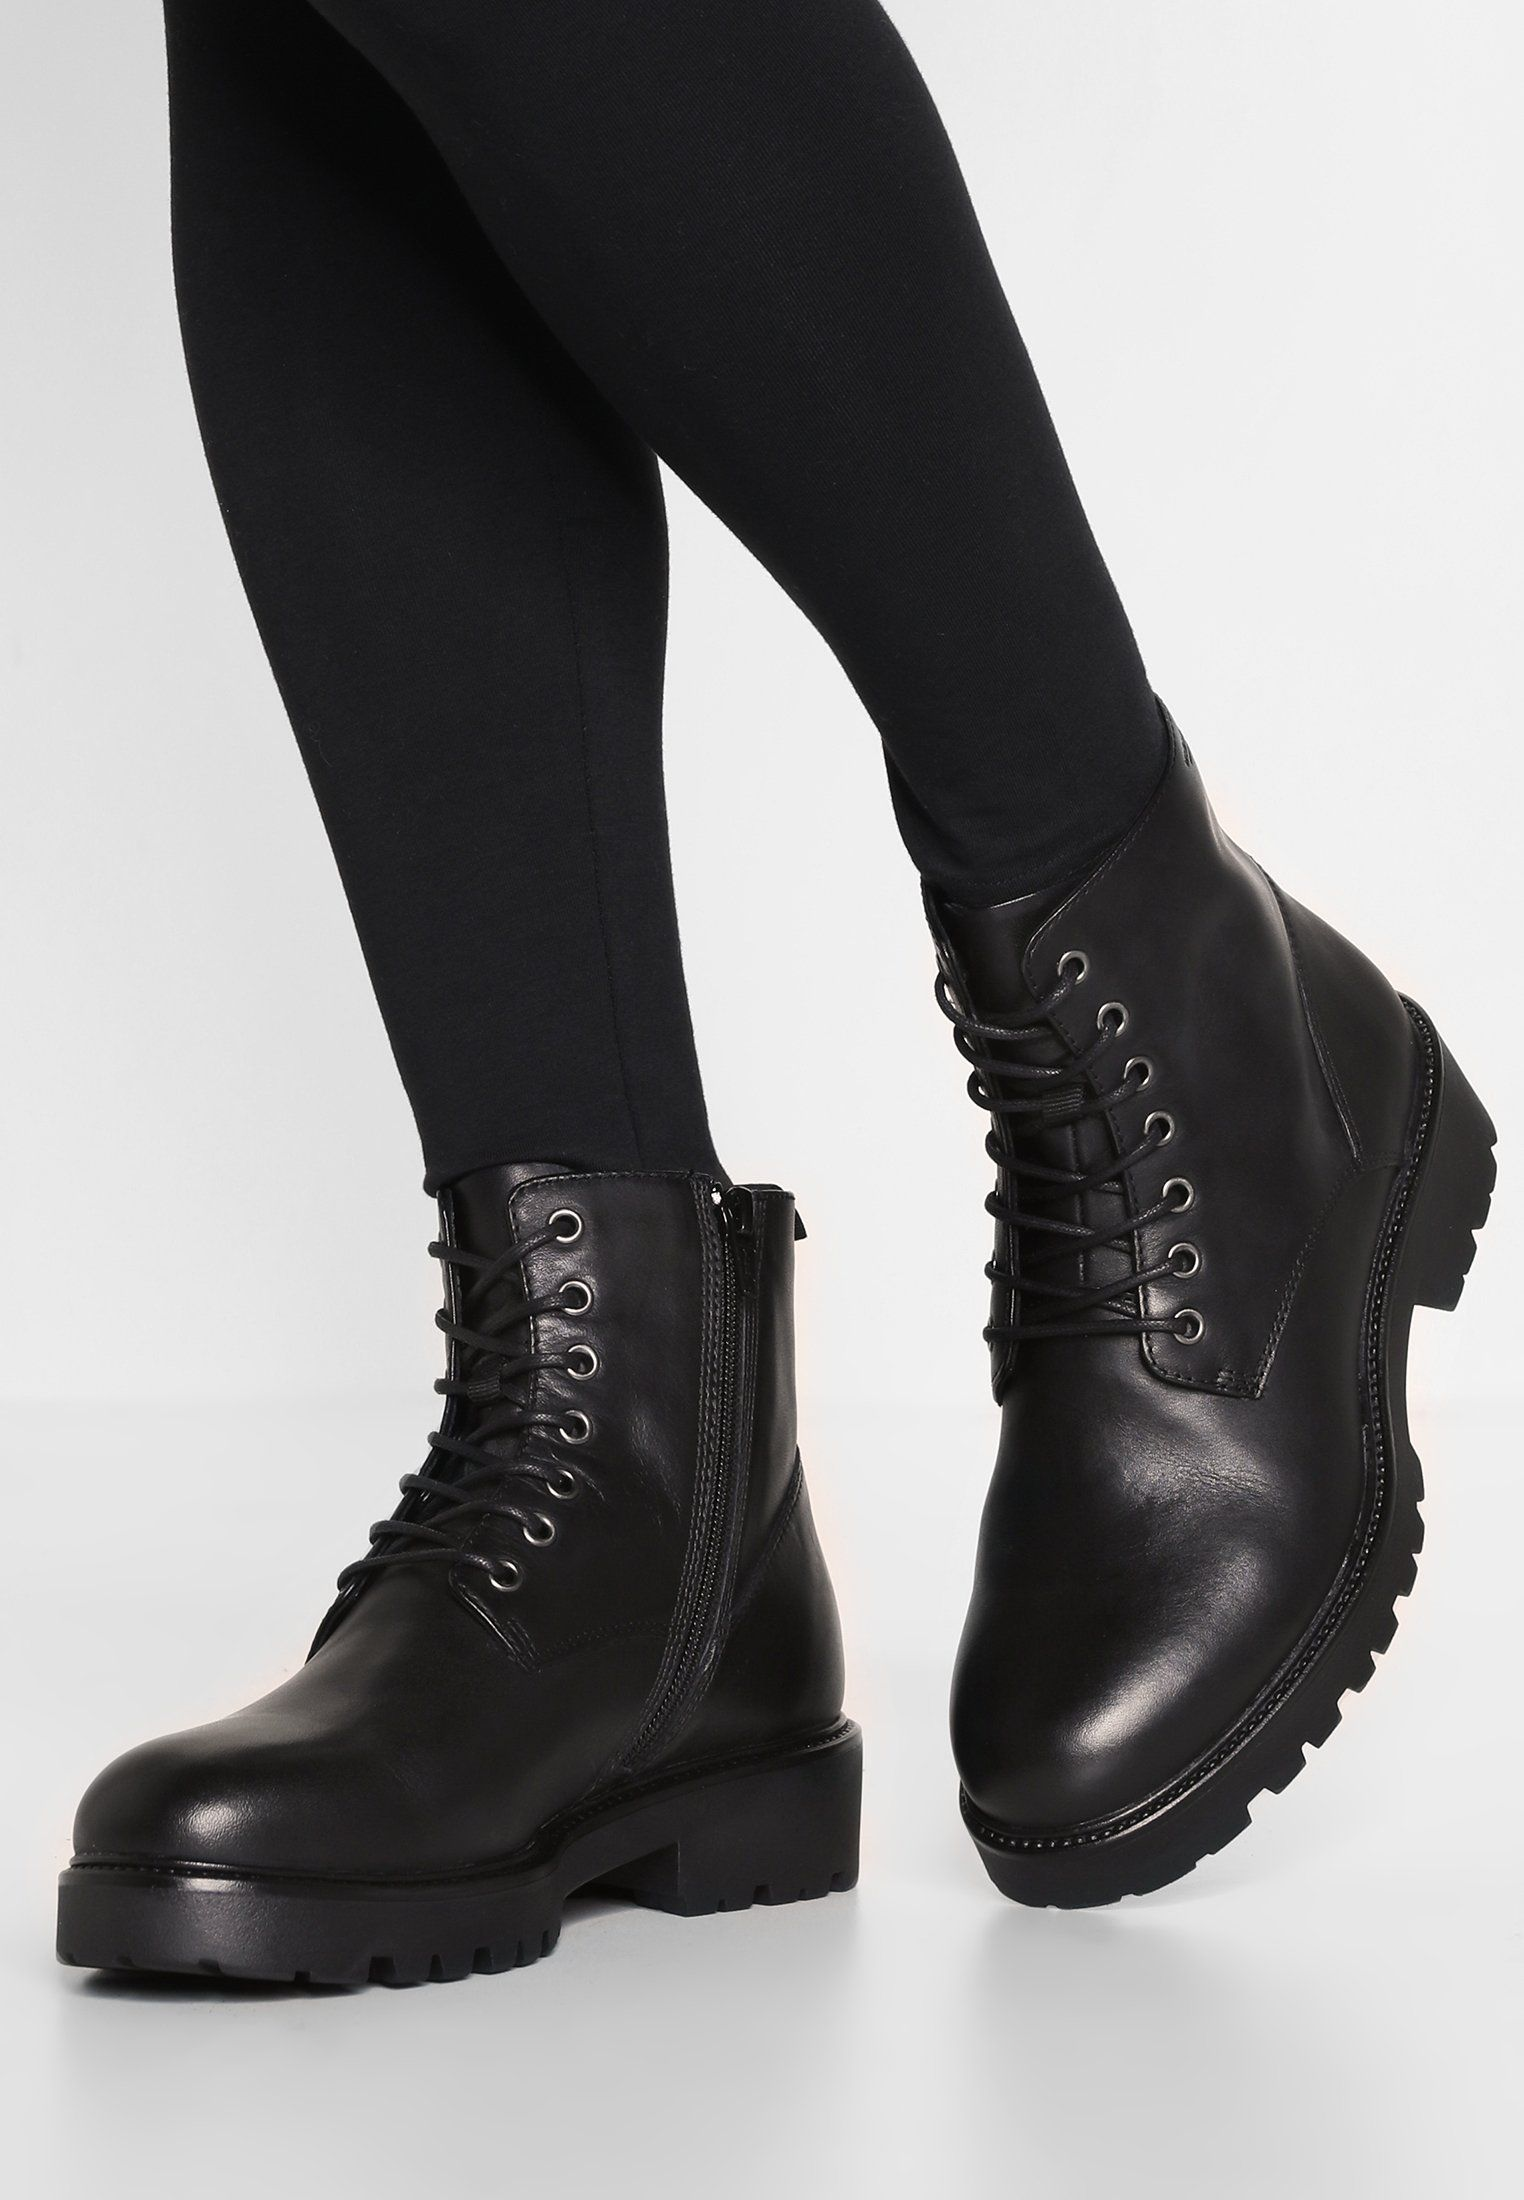 62cf701b97 KENOVA - Bottines à plateau - black   ZALANDO.FR 🛒 in 2019 ...